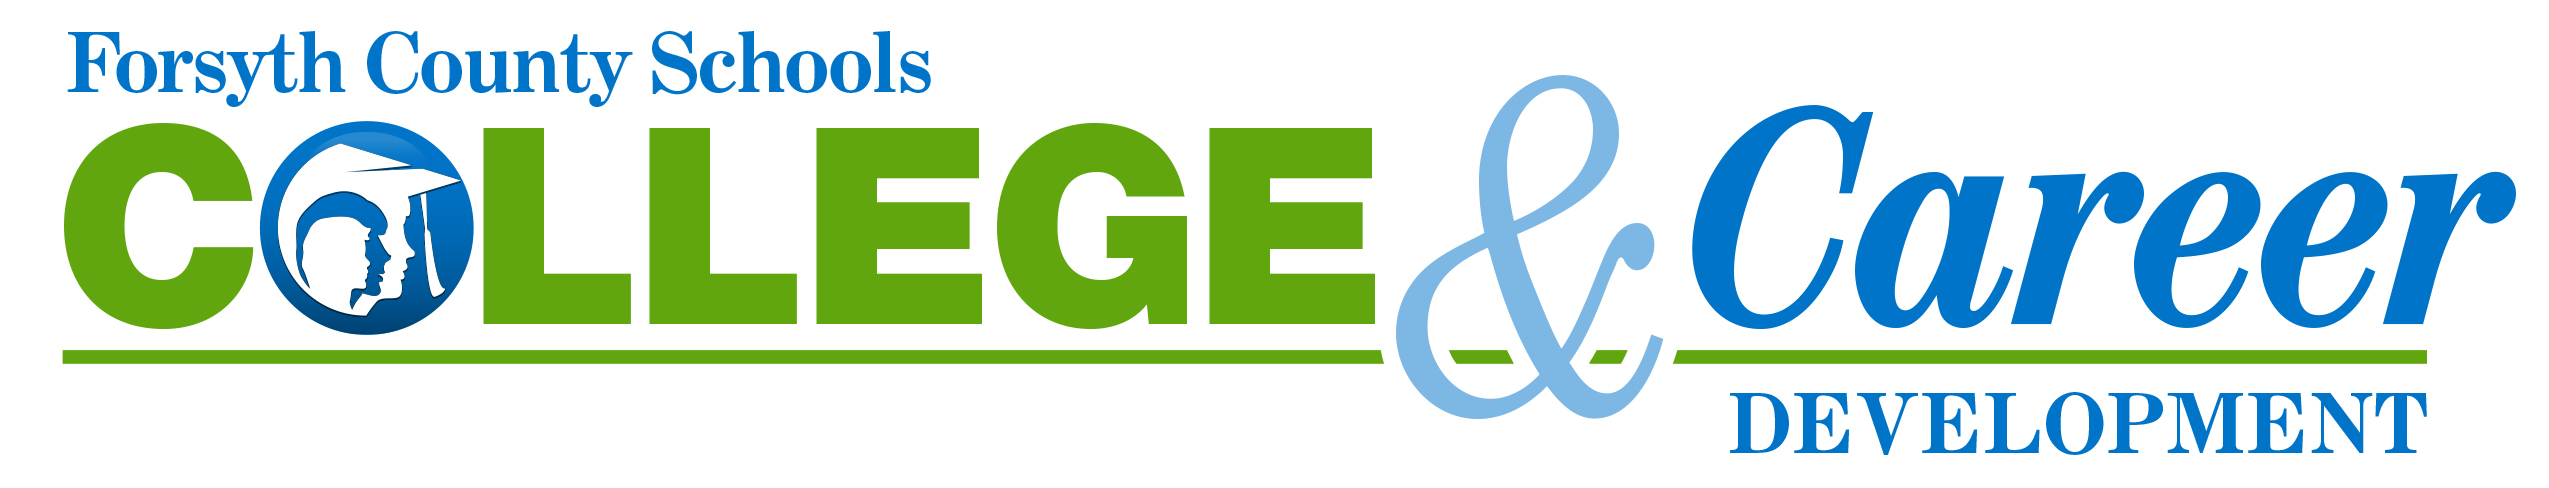 College and Career Development logo